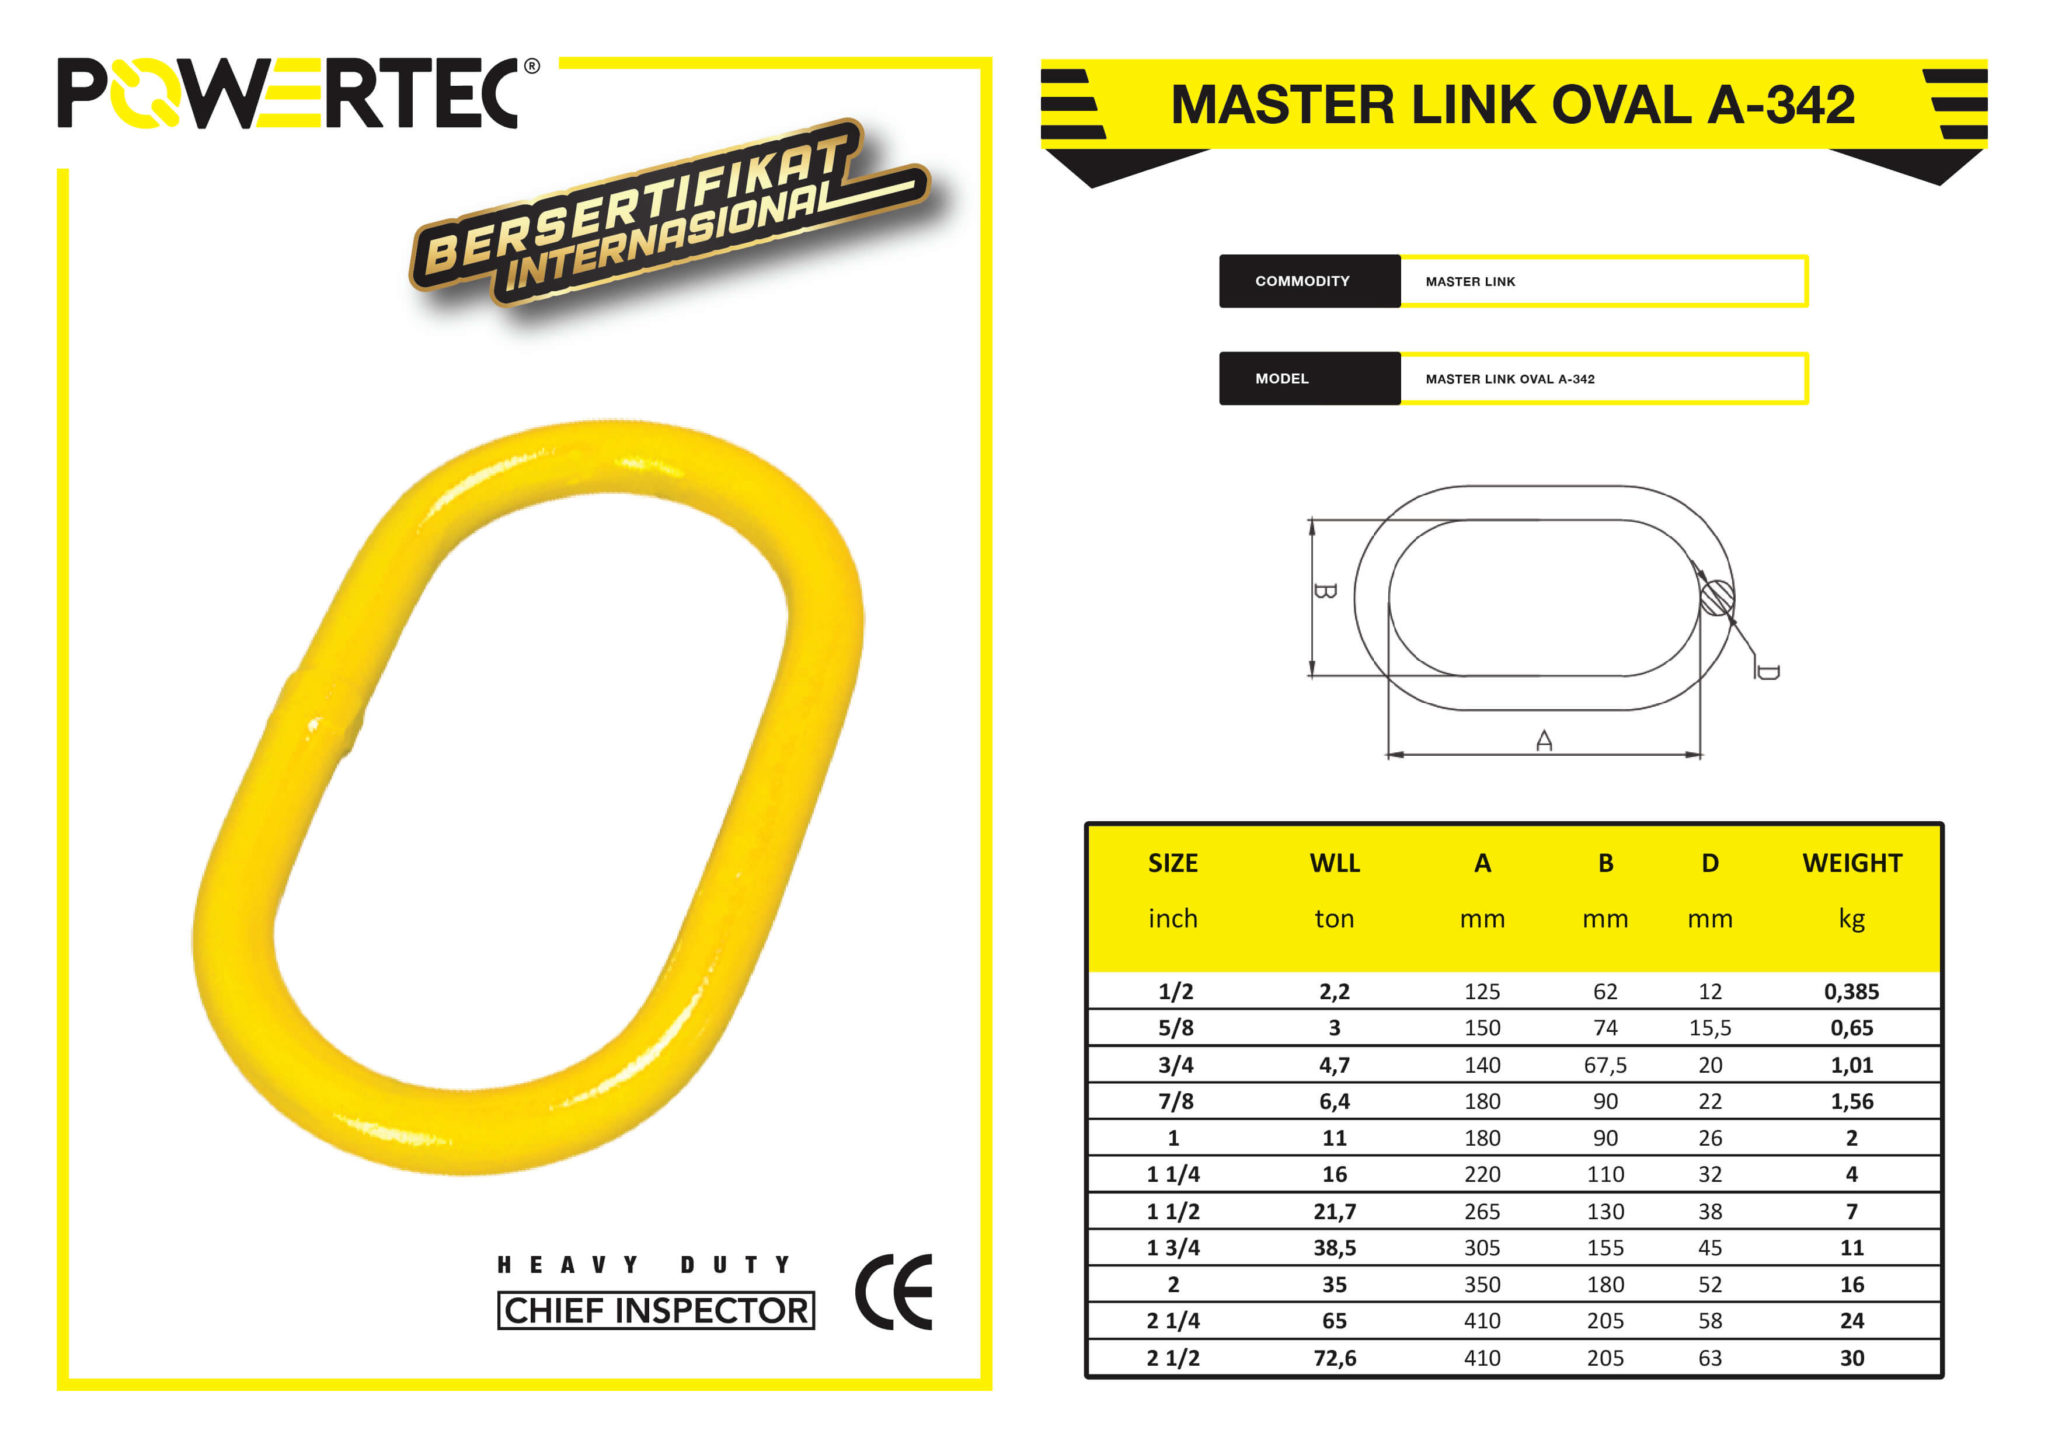 POWERTEC MASTER LINK OVAL A-342 BROCHURE